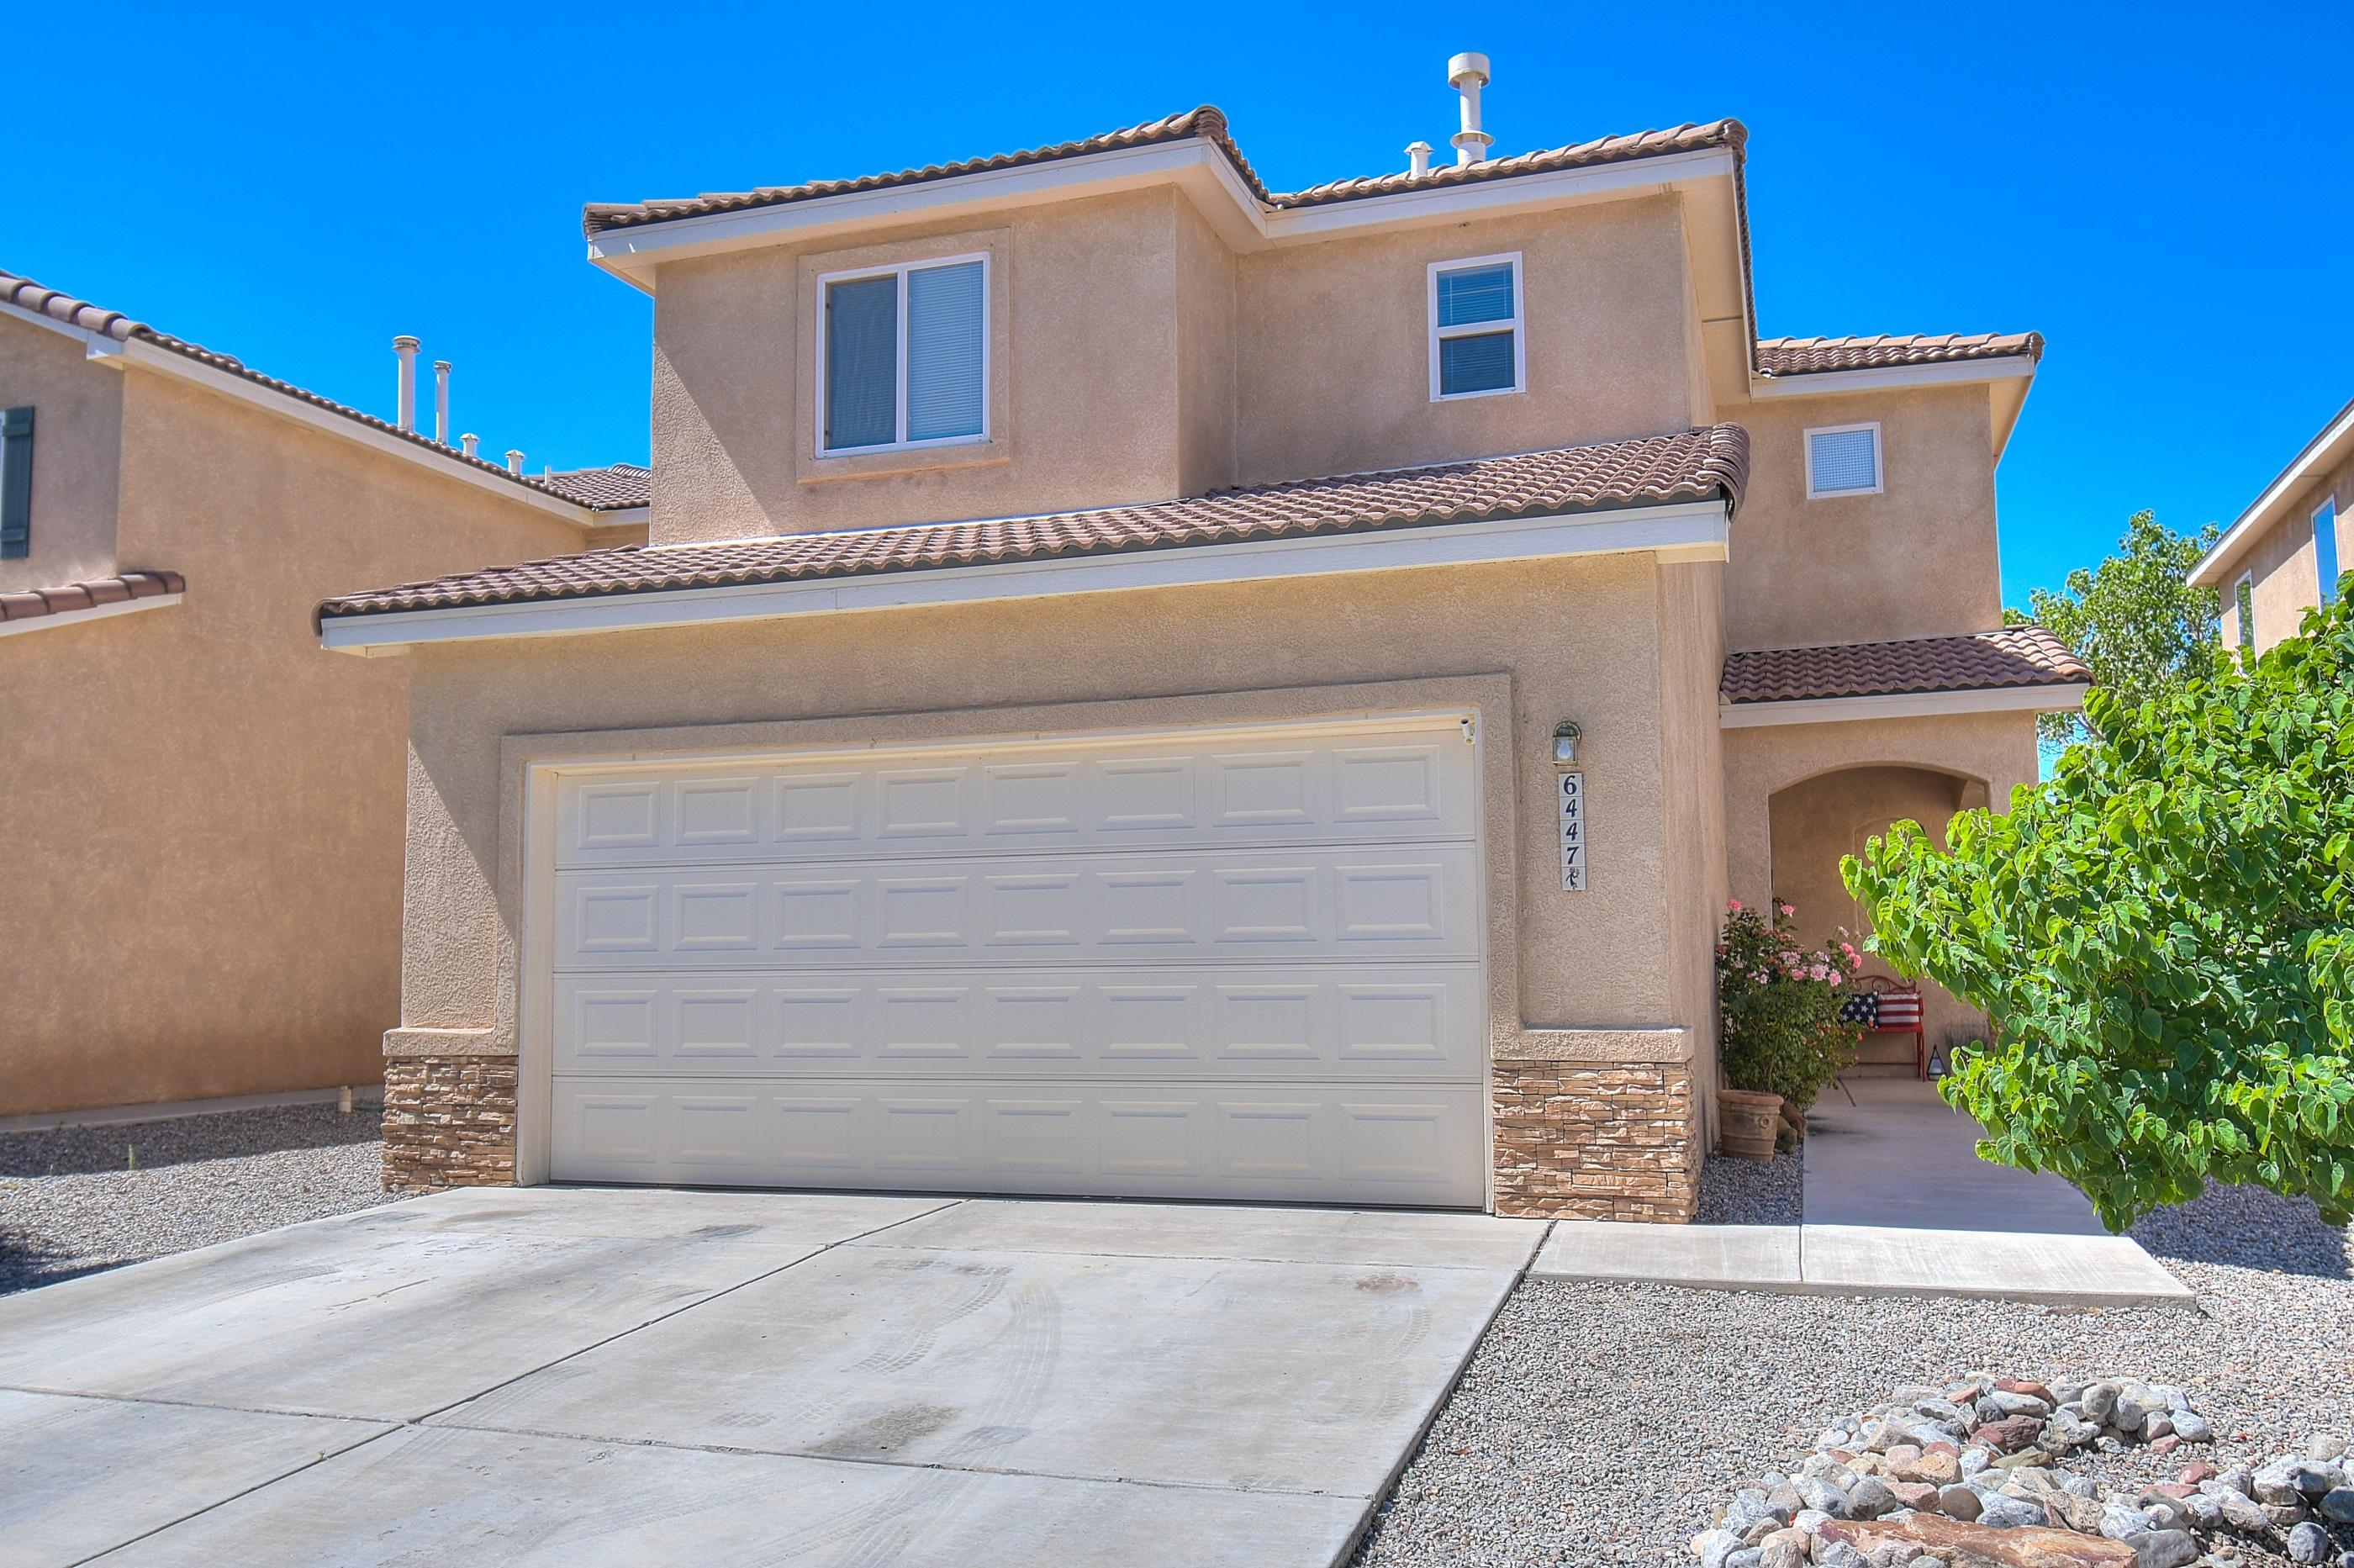 Cute four bedroom home with master bedroom on the main level. Kitchen with Stainless steel appliances is open to the living room. There are no neighbors directly behind. Security cameras and monitor convey for your added peace of mind.